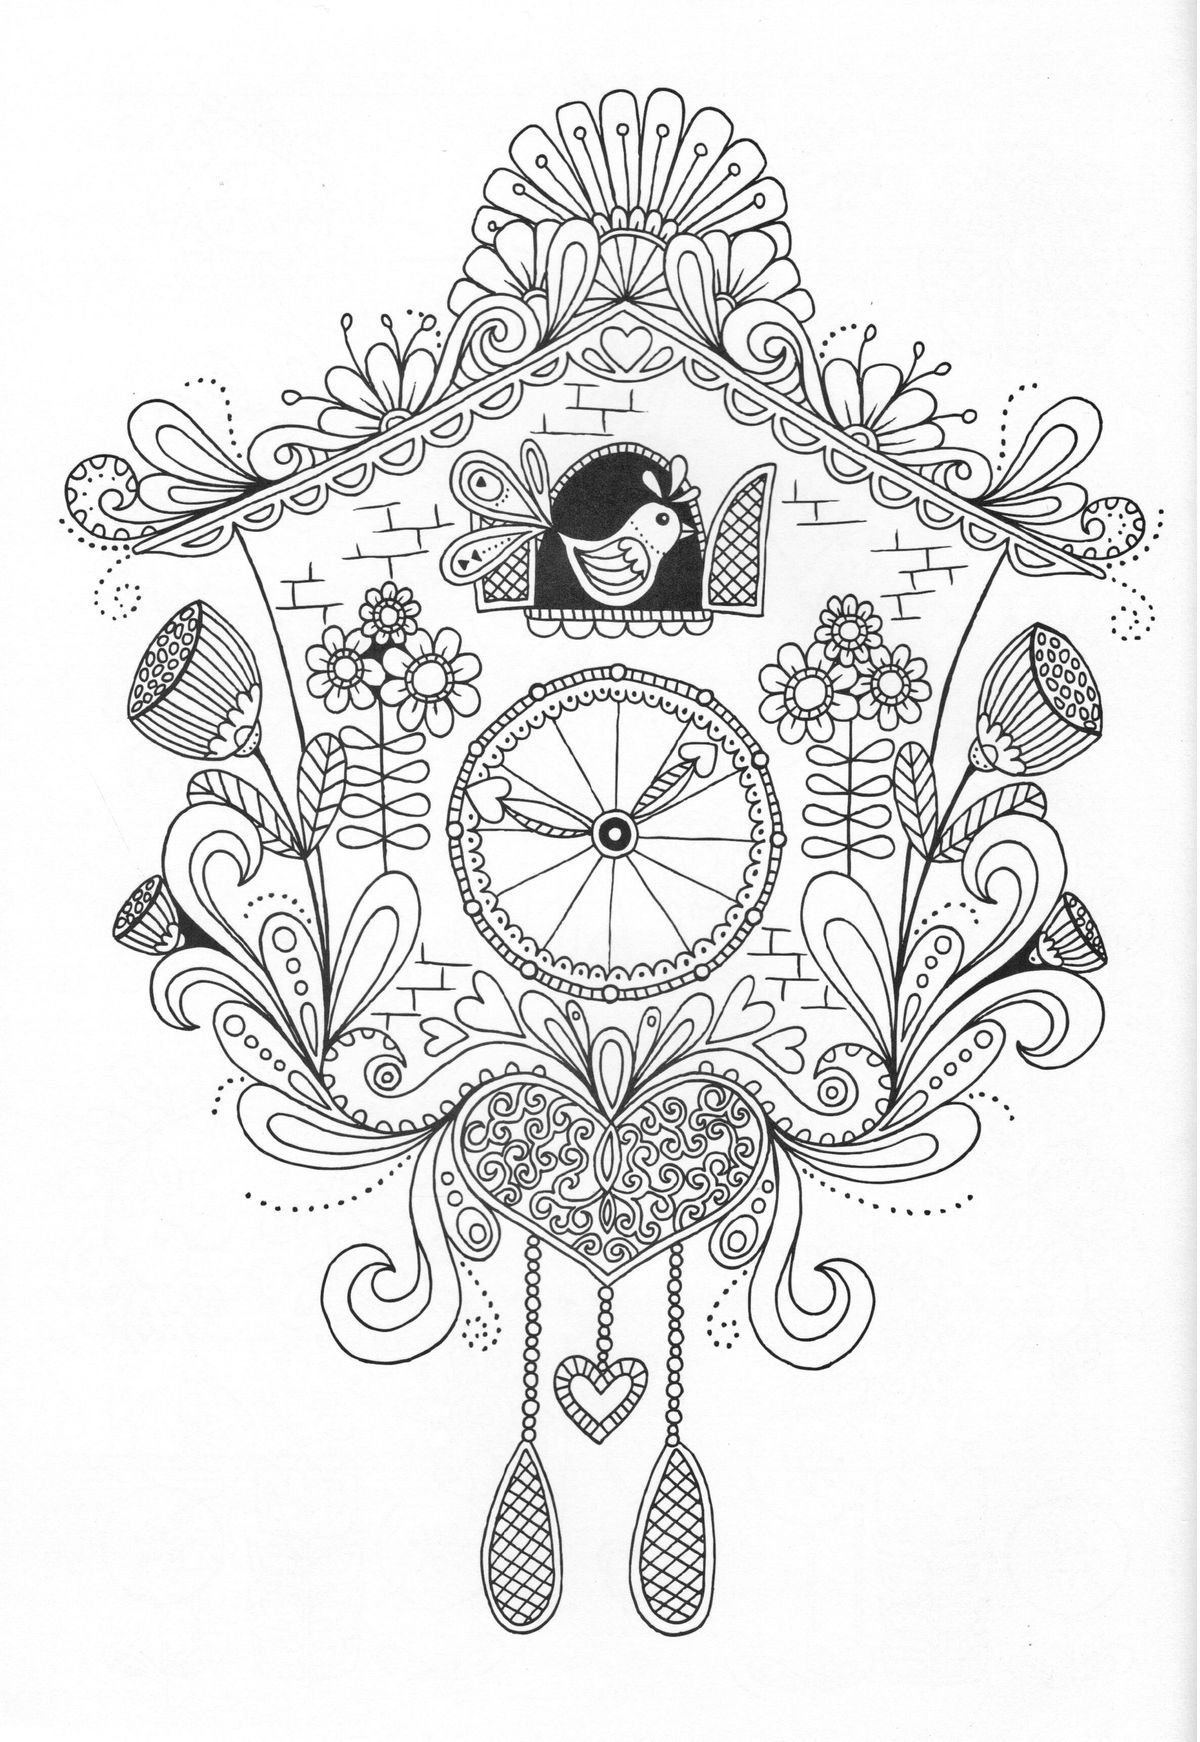 Cuckoo clock coloring page Coloring pages Adult